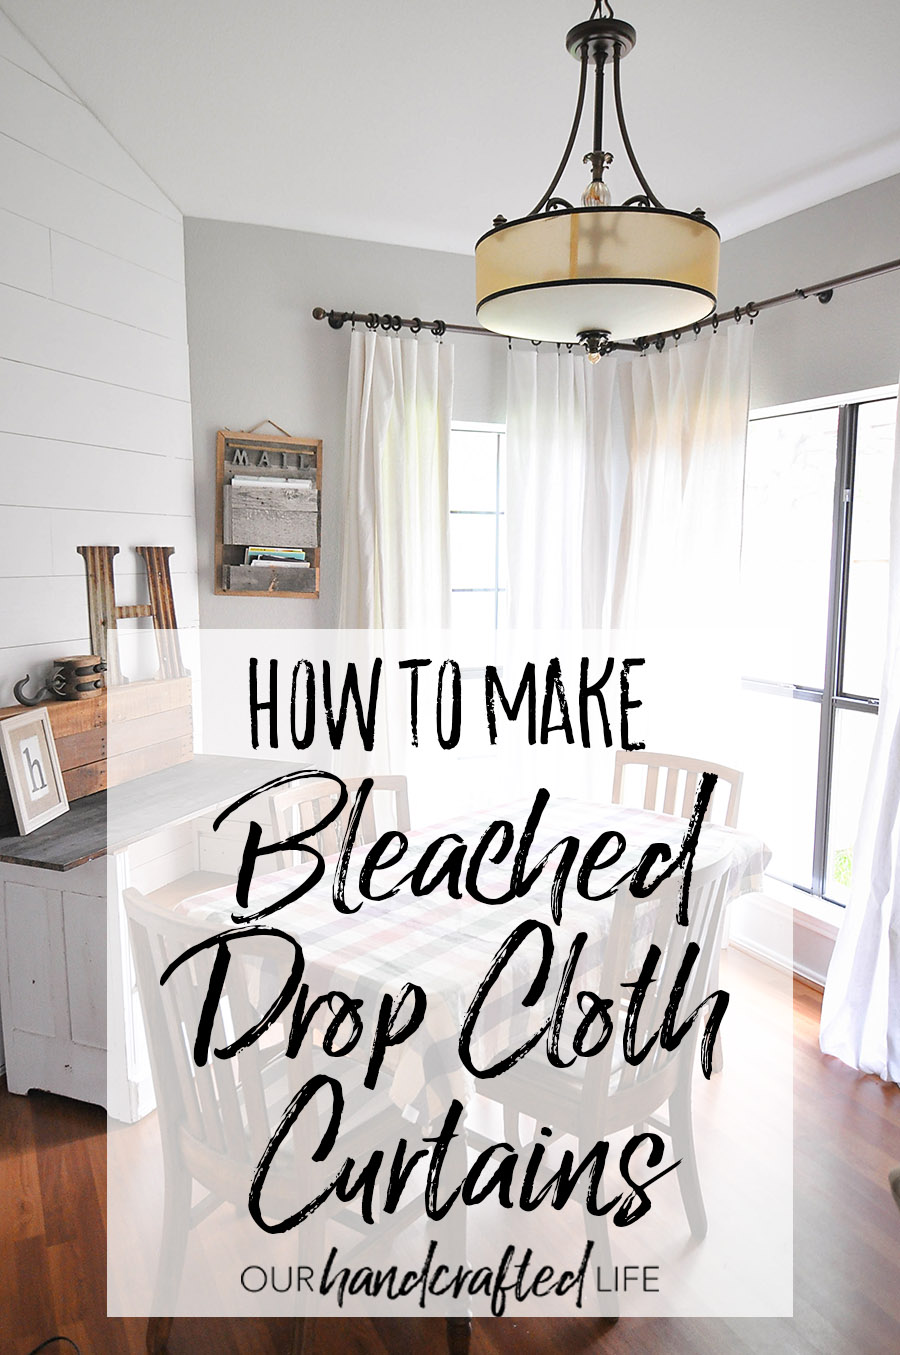 How to Make Bleached Drop Cloth Curtains - Our Handcrafted Life